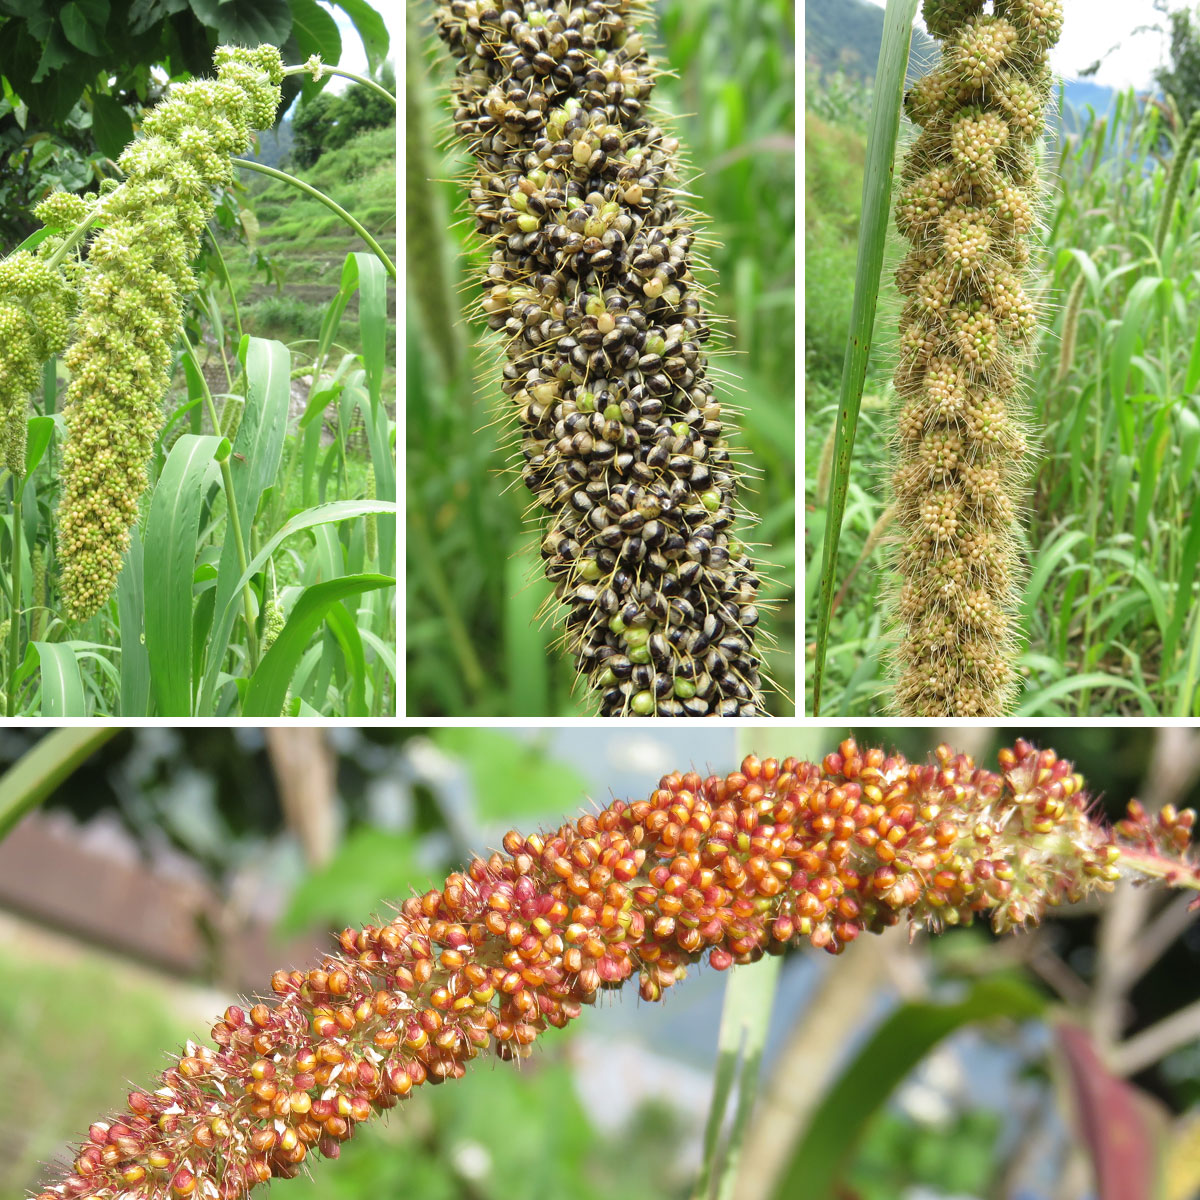 Bariyo kaguno (top left), kalo kaguno (top centre), seto kaguno (right) and rato kaguno (bottom) are the four varieties of foxtail millet found in ...